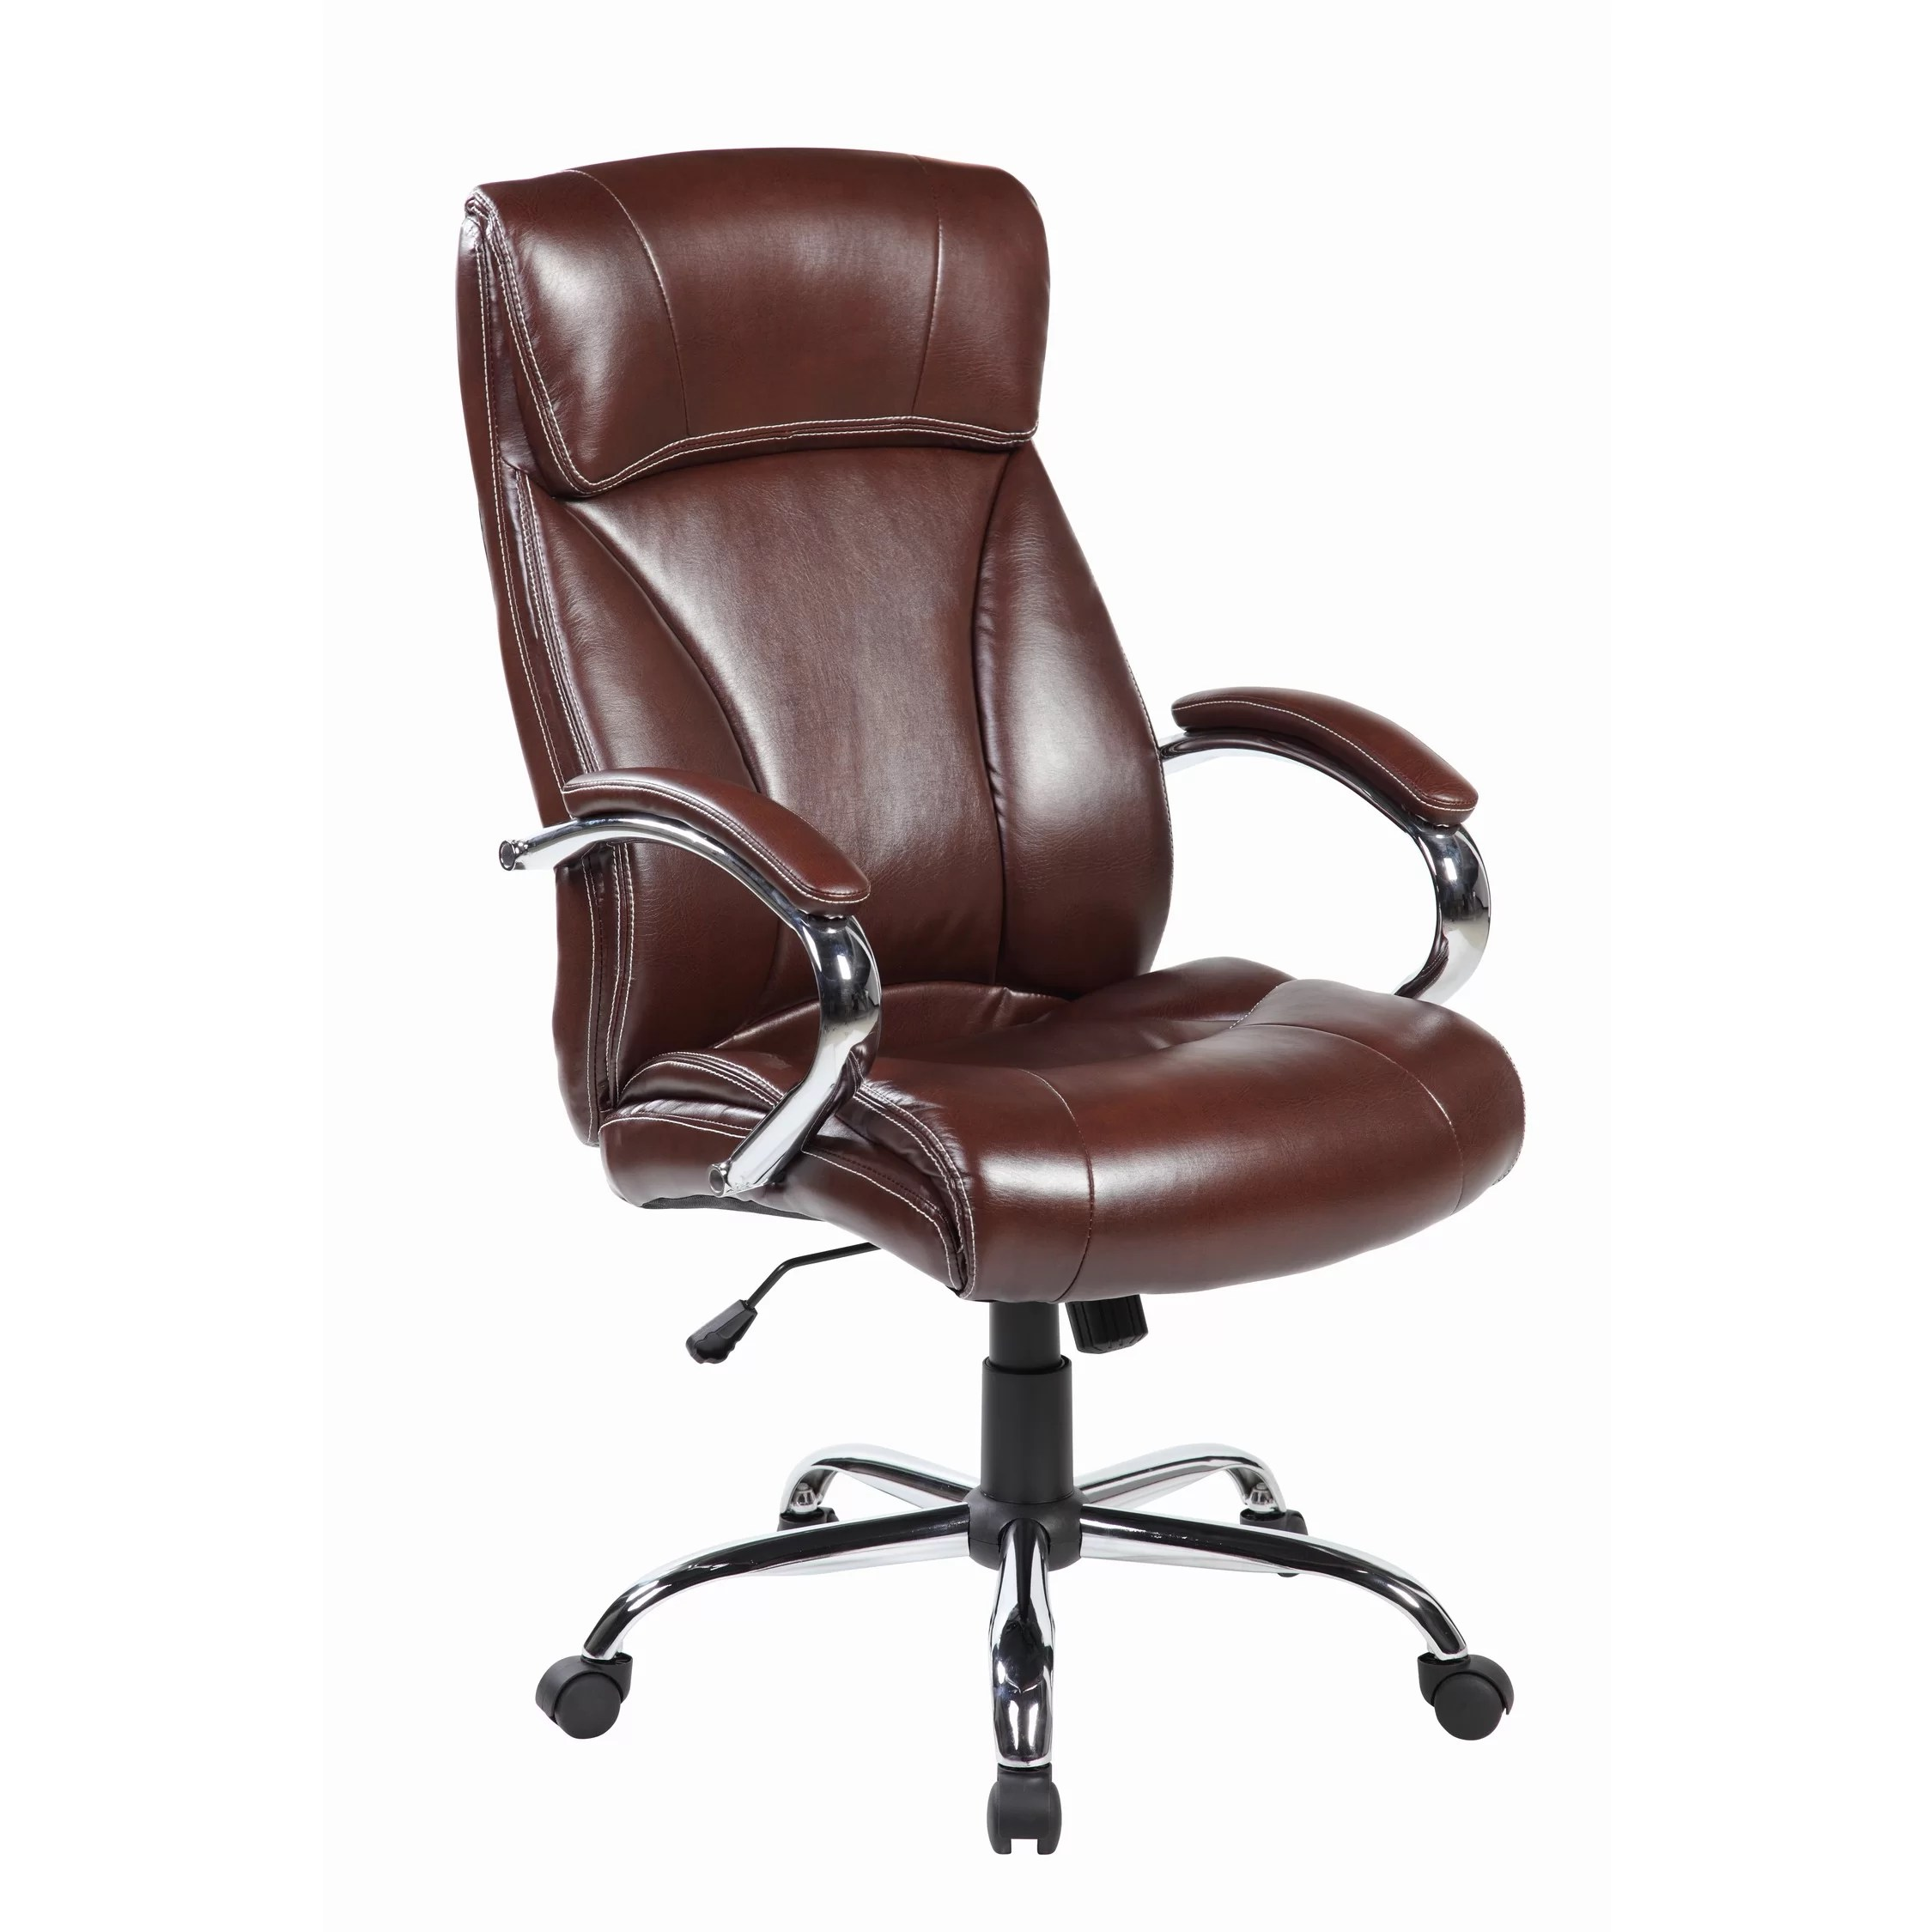 Executive Chairs United Chair Industries Llc High Back Executive Chair